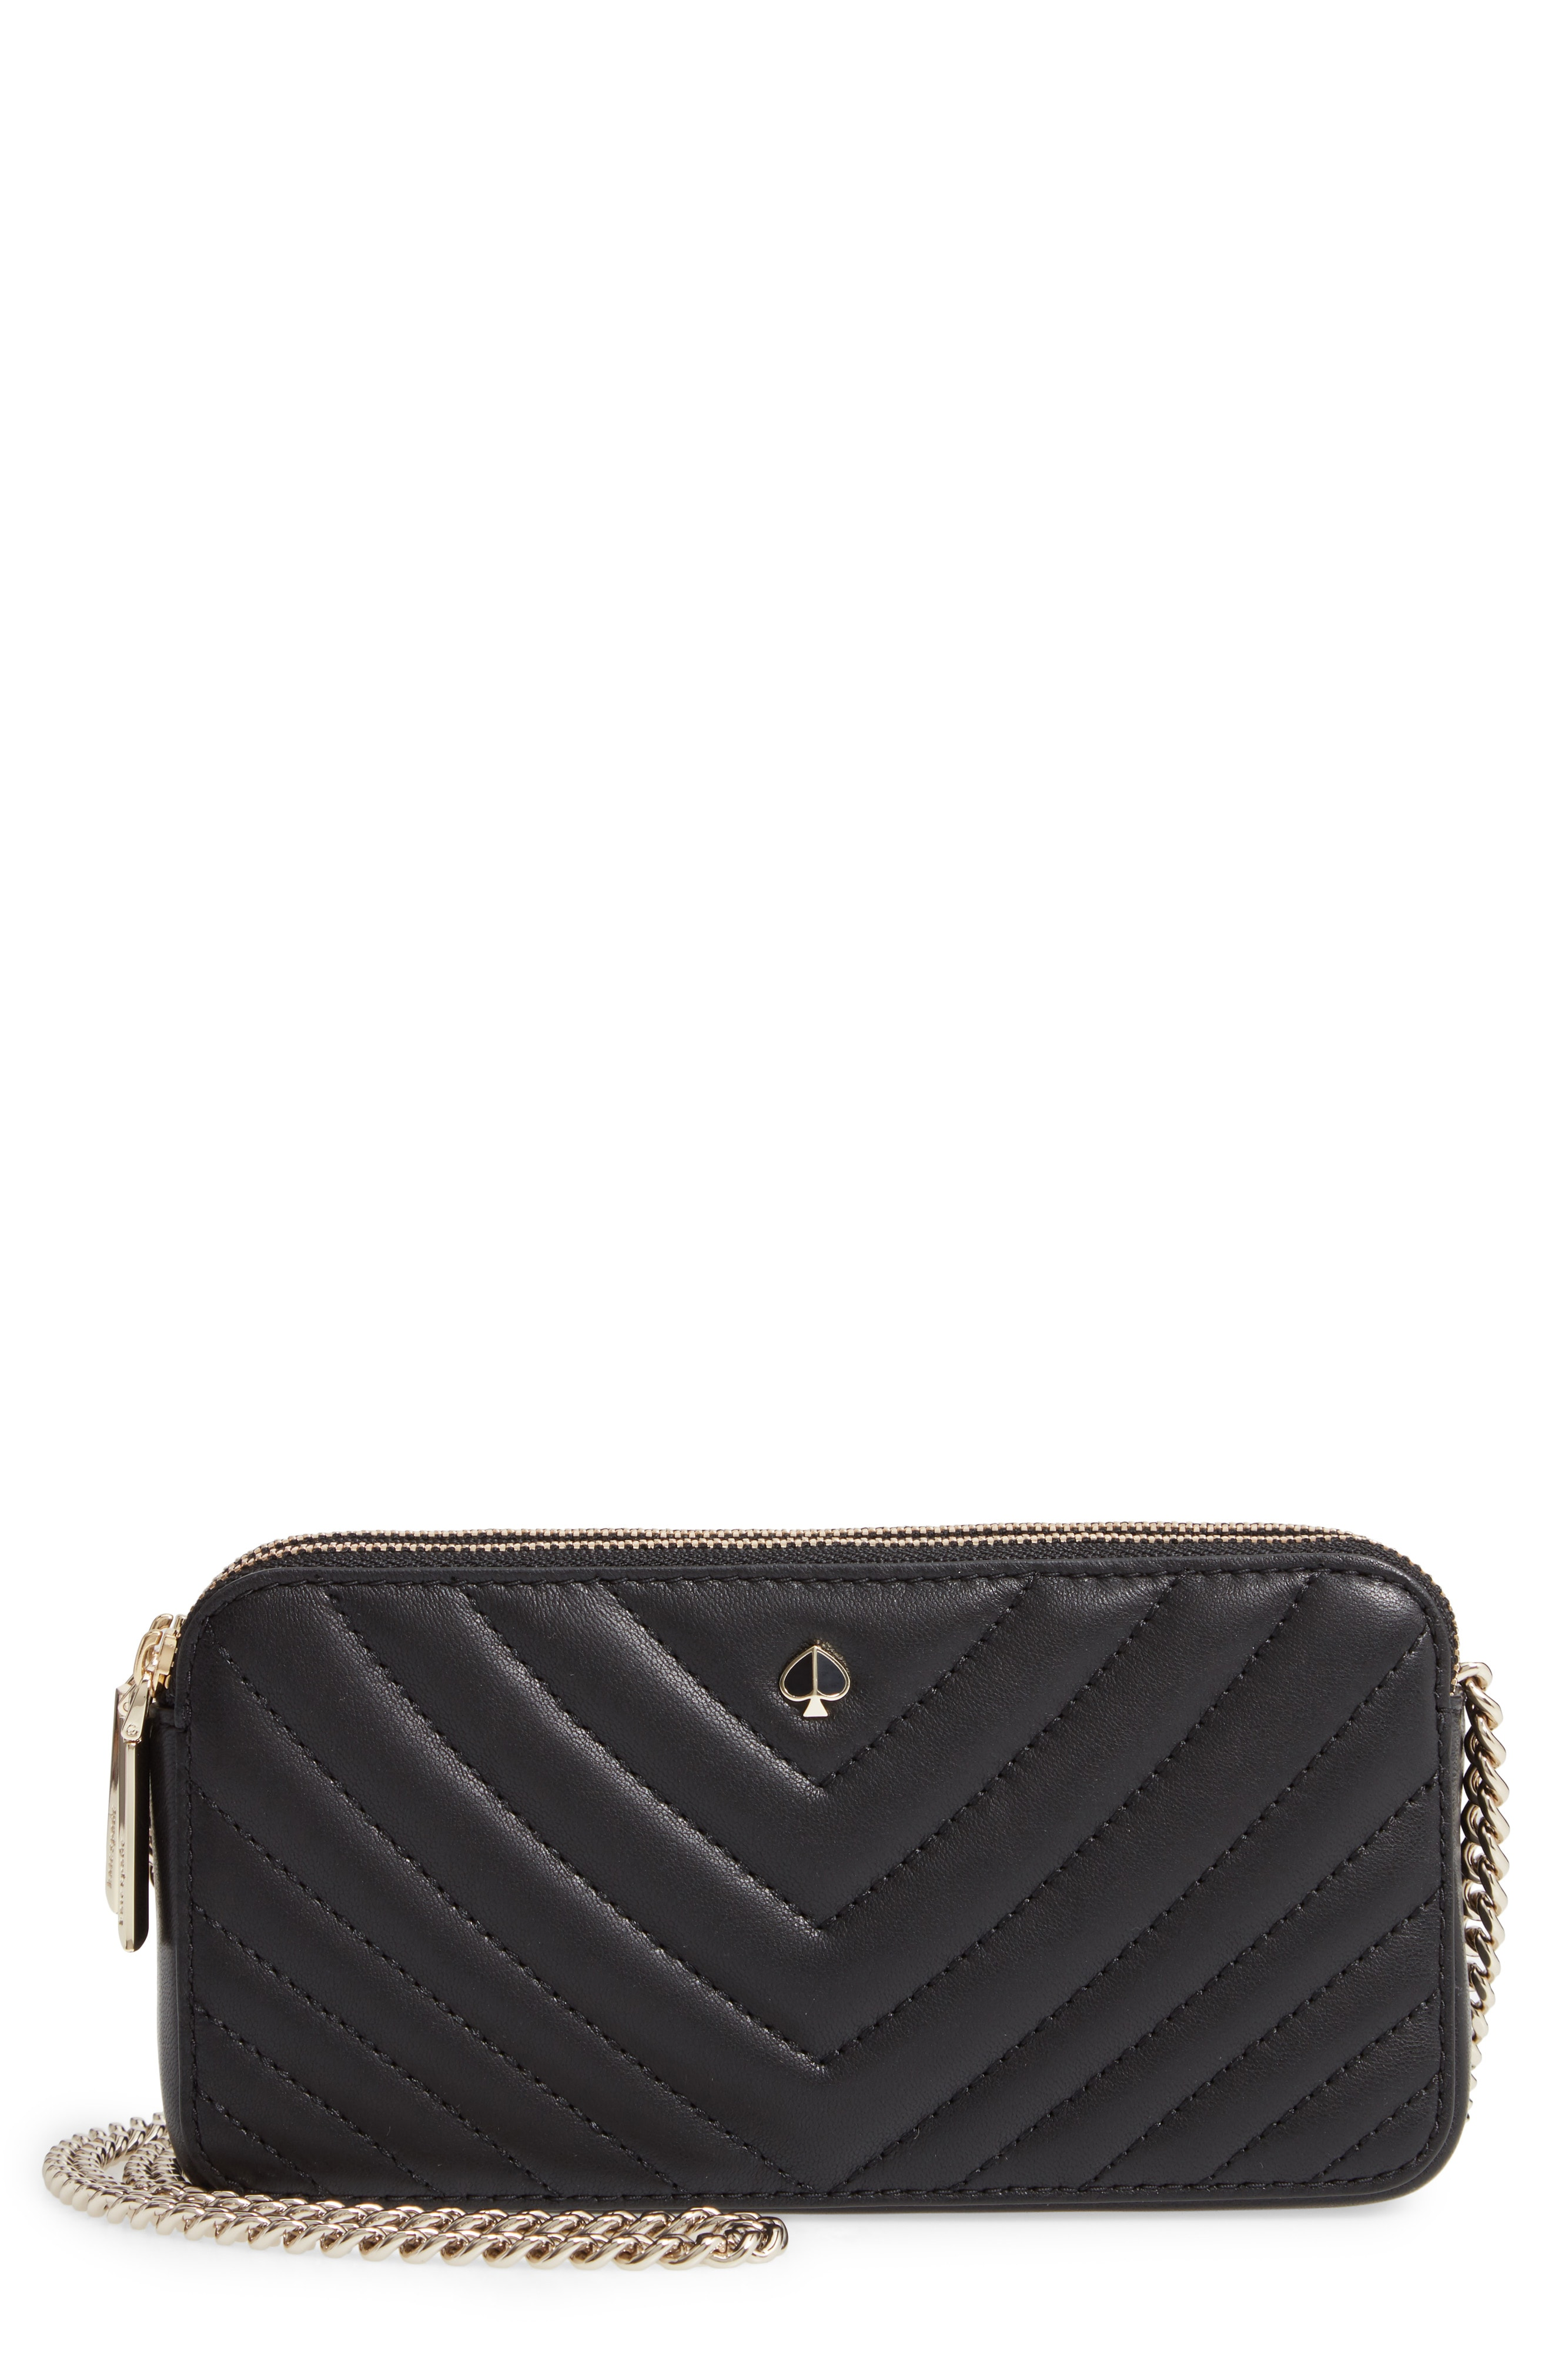 Clutches & Pouches   Nordstrom